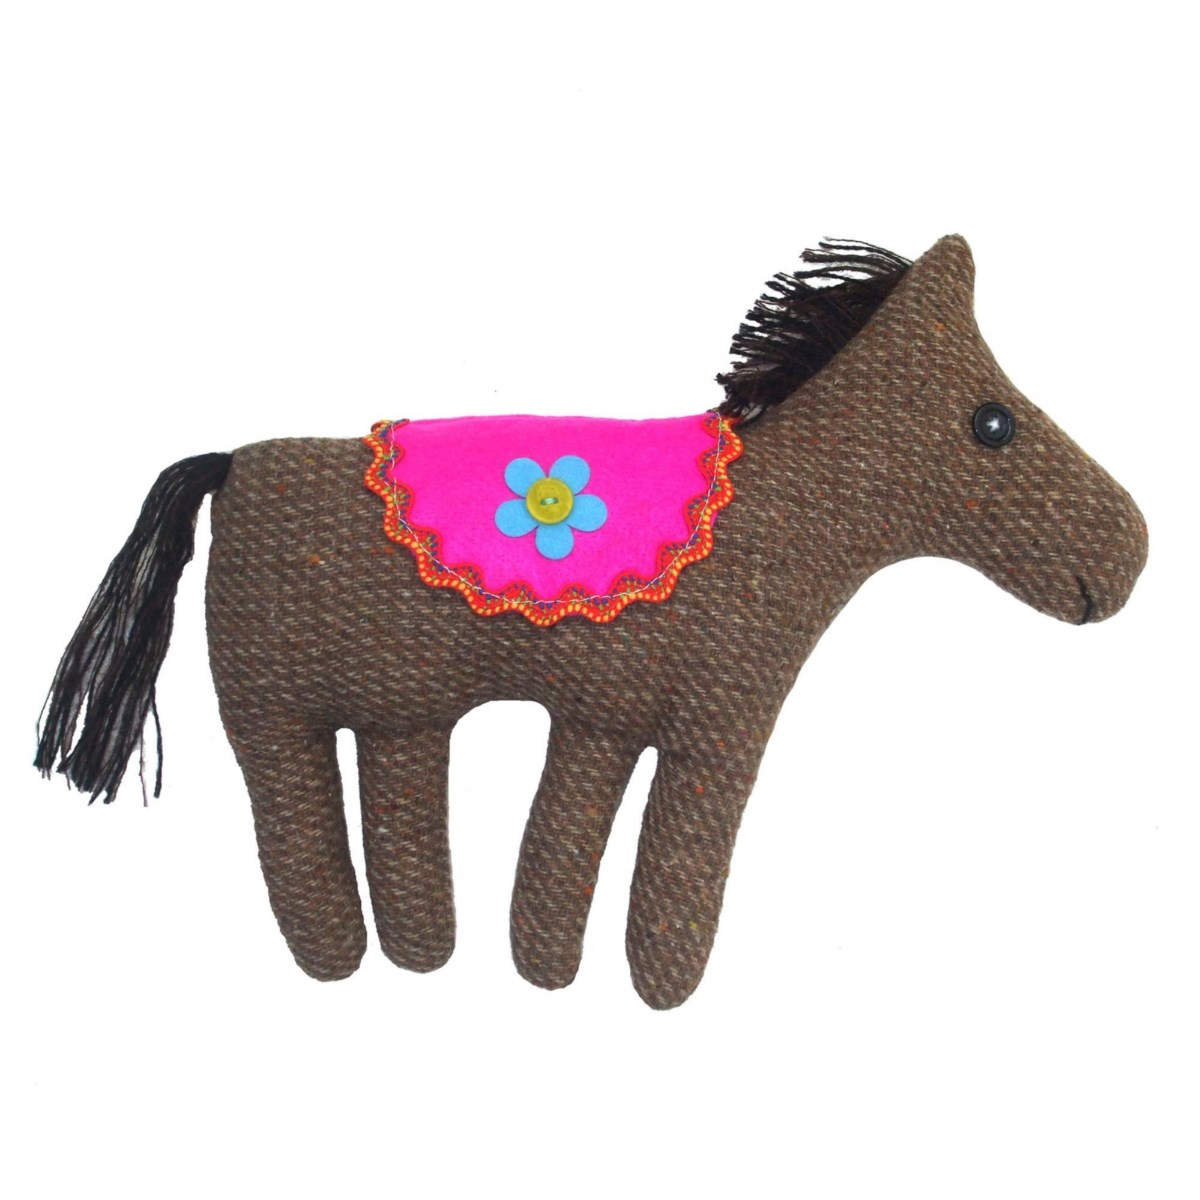 Make your own Pony sewing kit